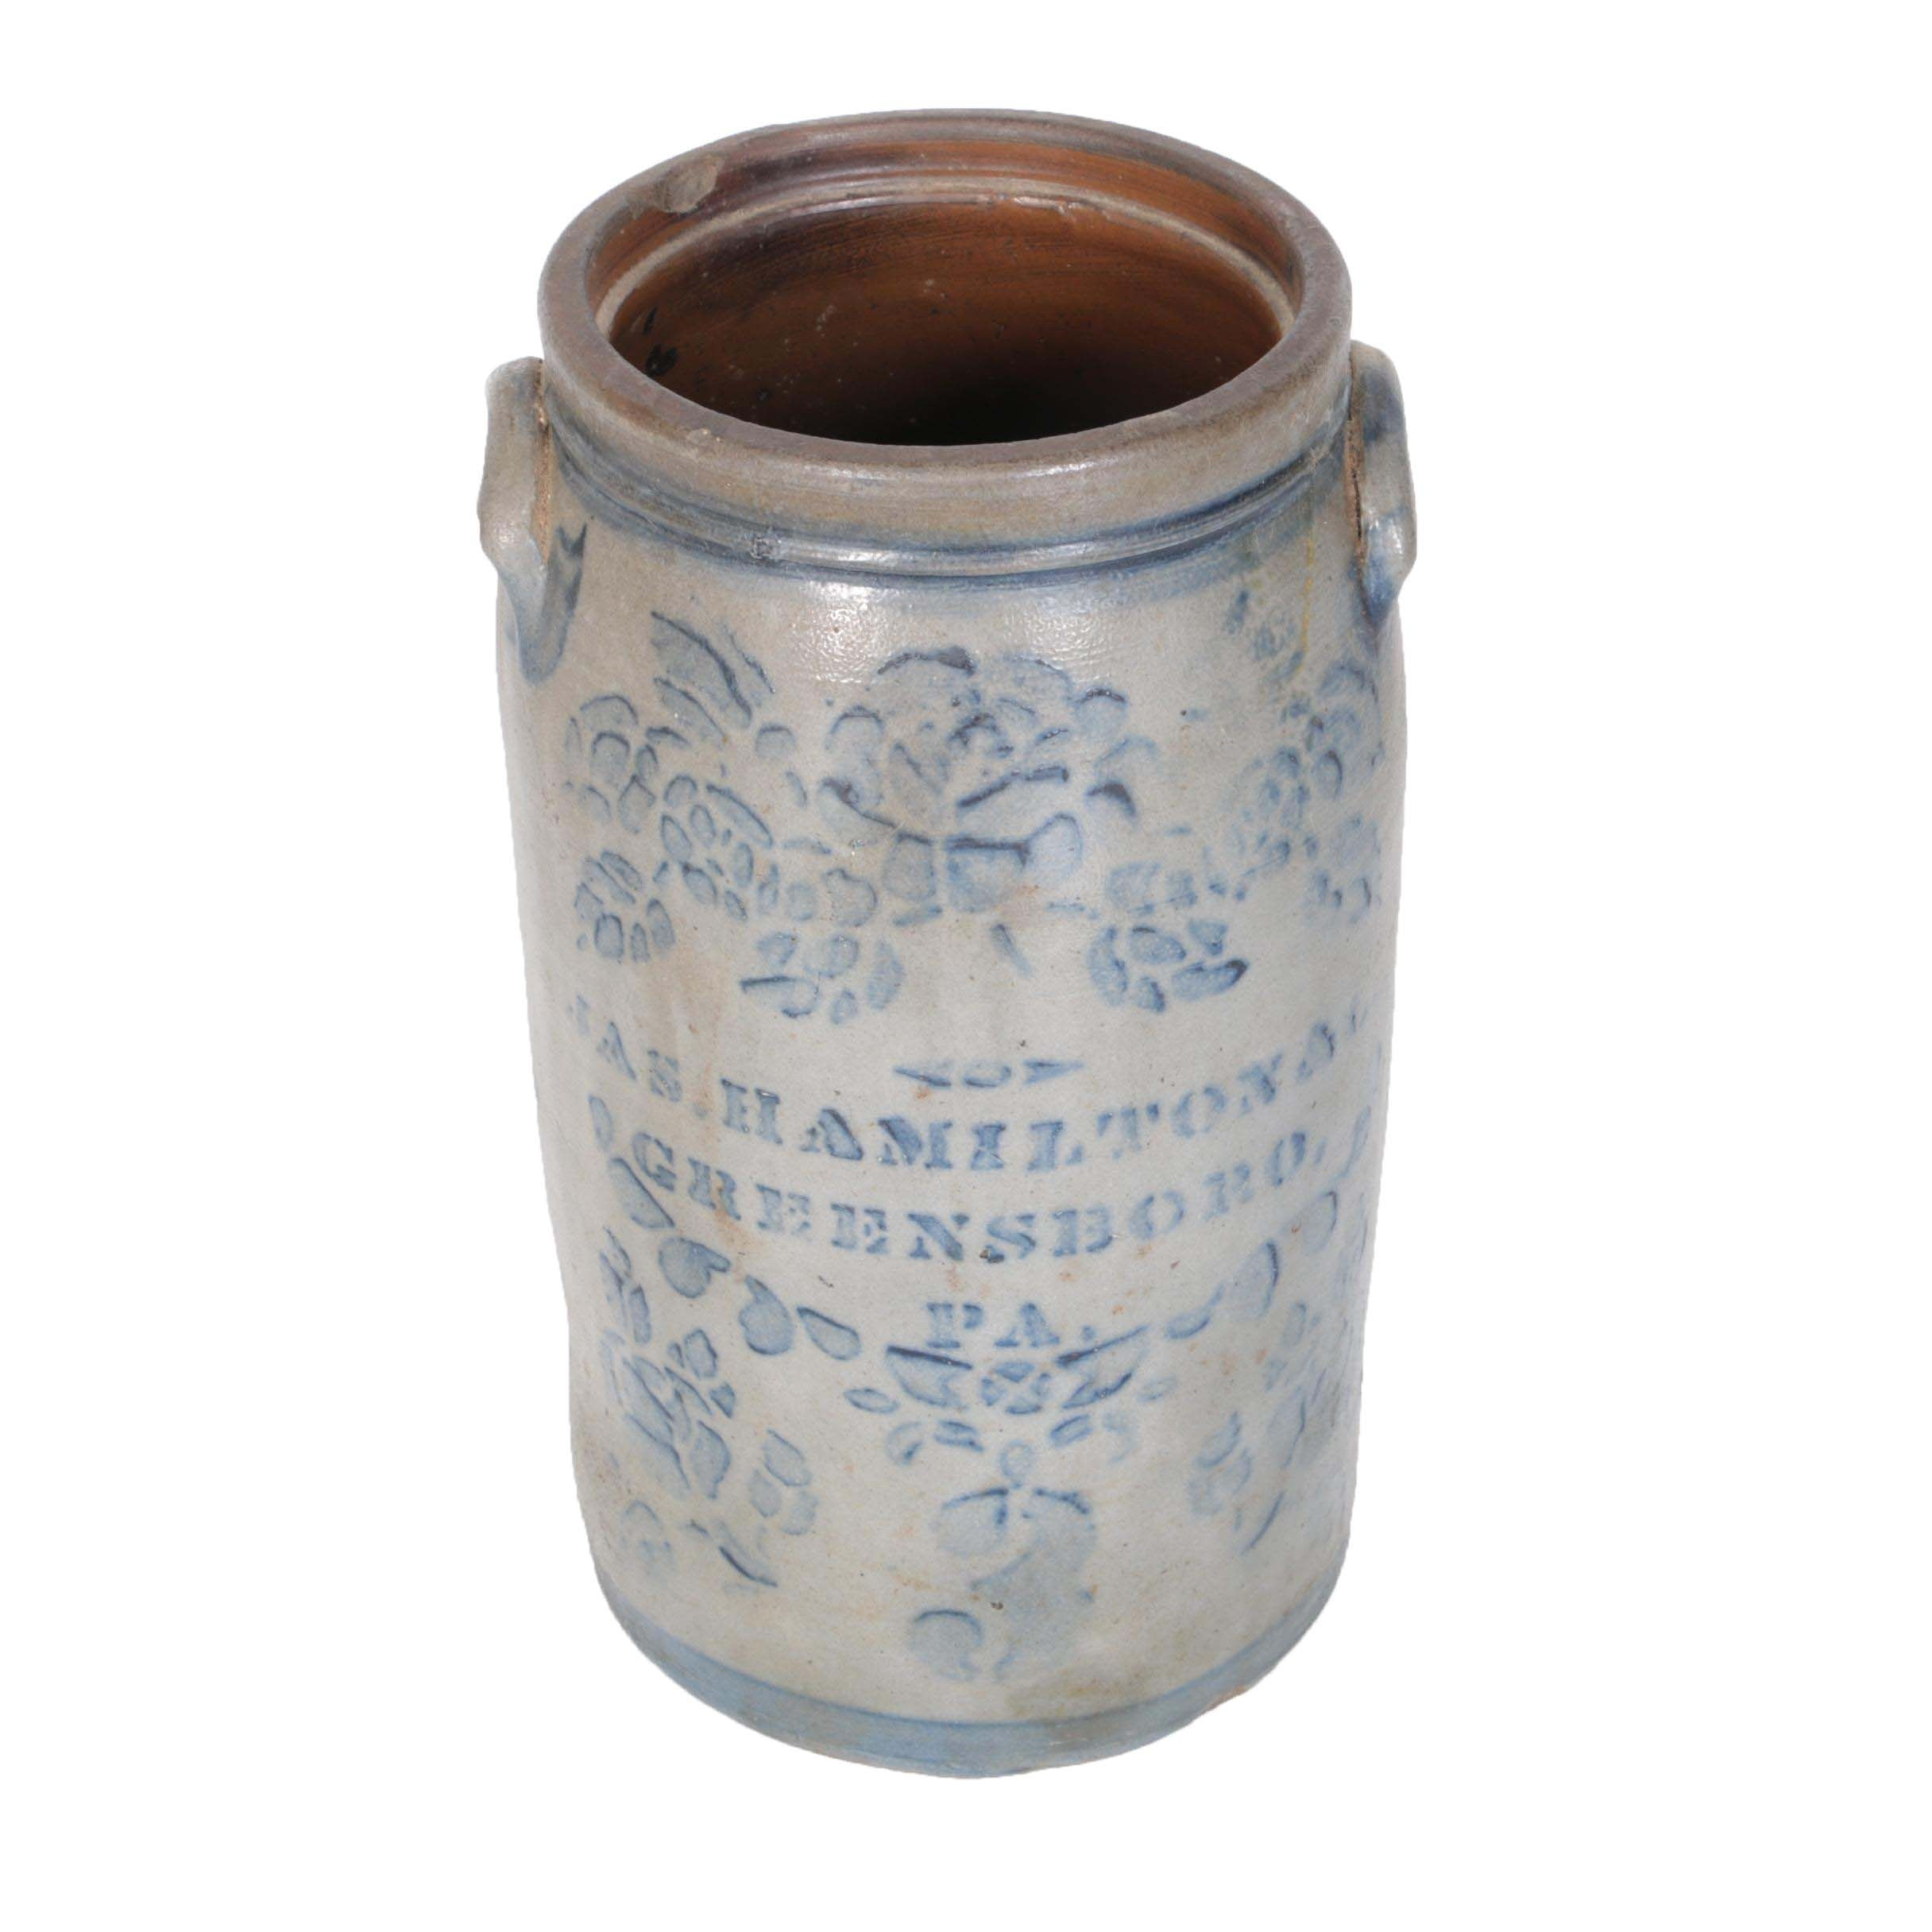 James Hamilton & Co. Stoneware Crock, Greensboro, Pennsylvania